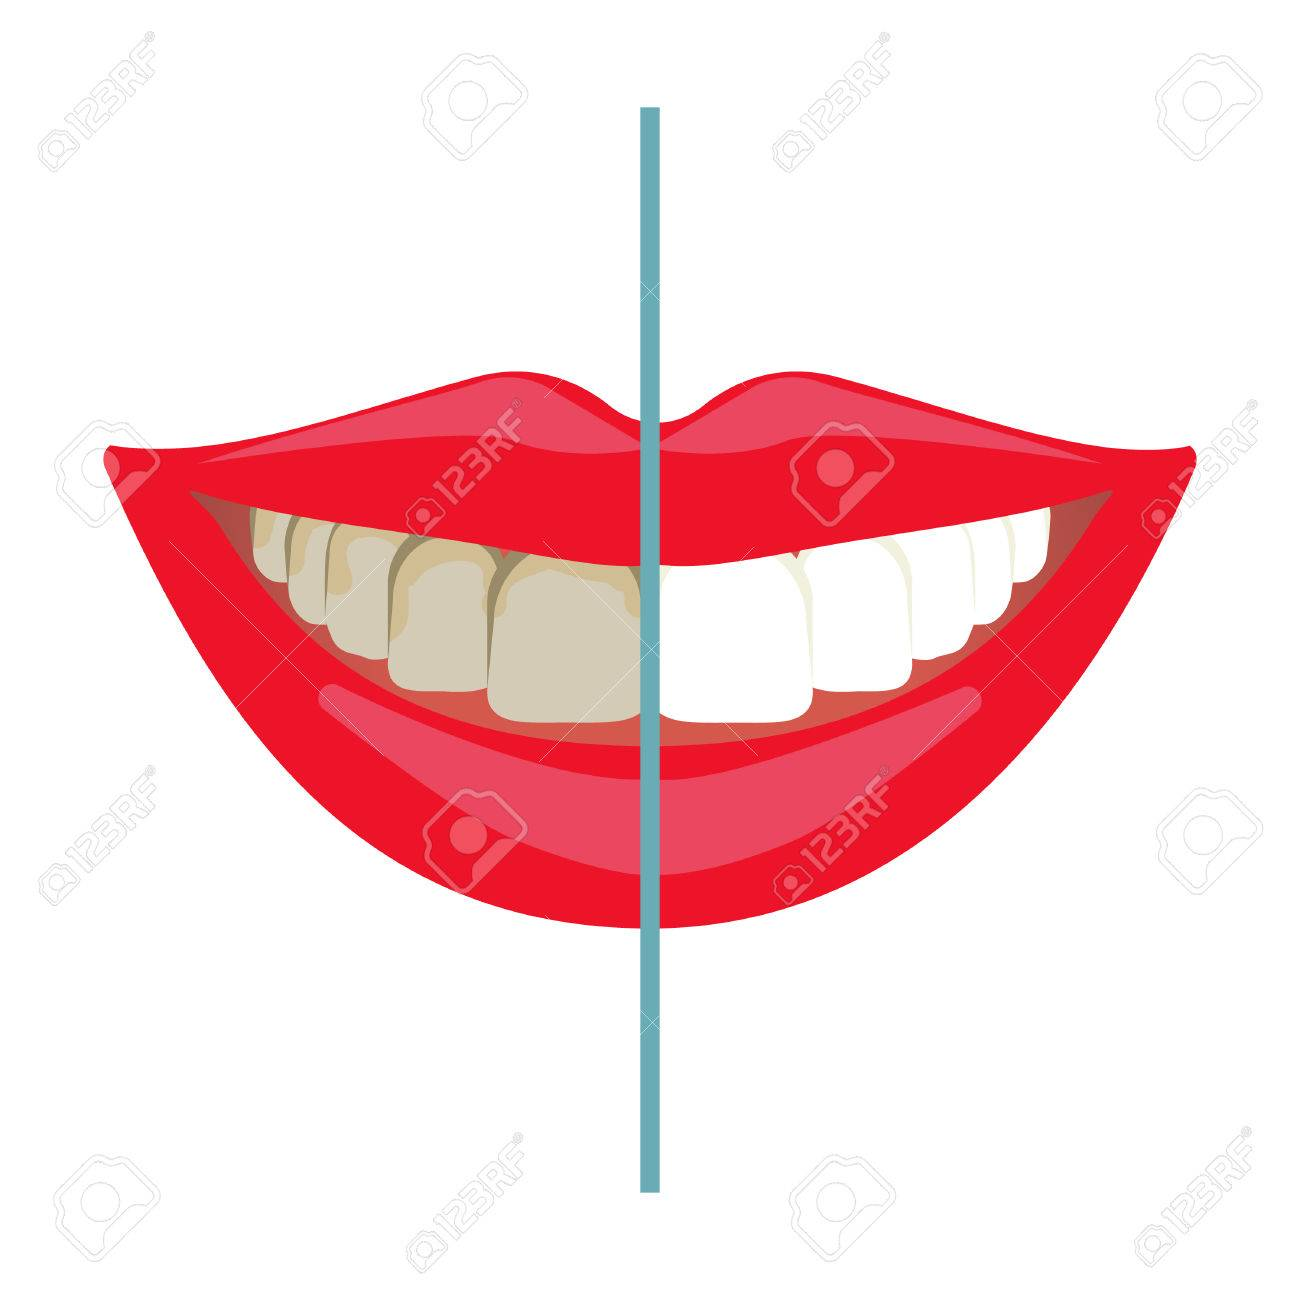 Whitening treatment as is indicated by comparison to the whitening - Teeth Whitening Before And After Results Dental Bleaching Teeth Smile Tooth Treatment Comparison